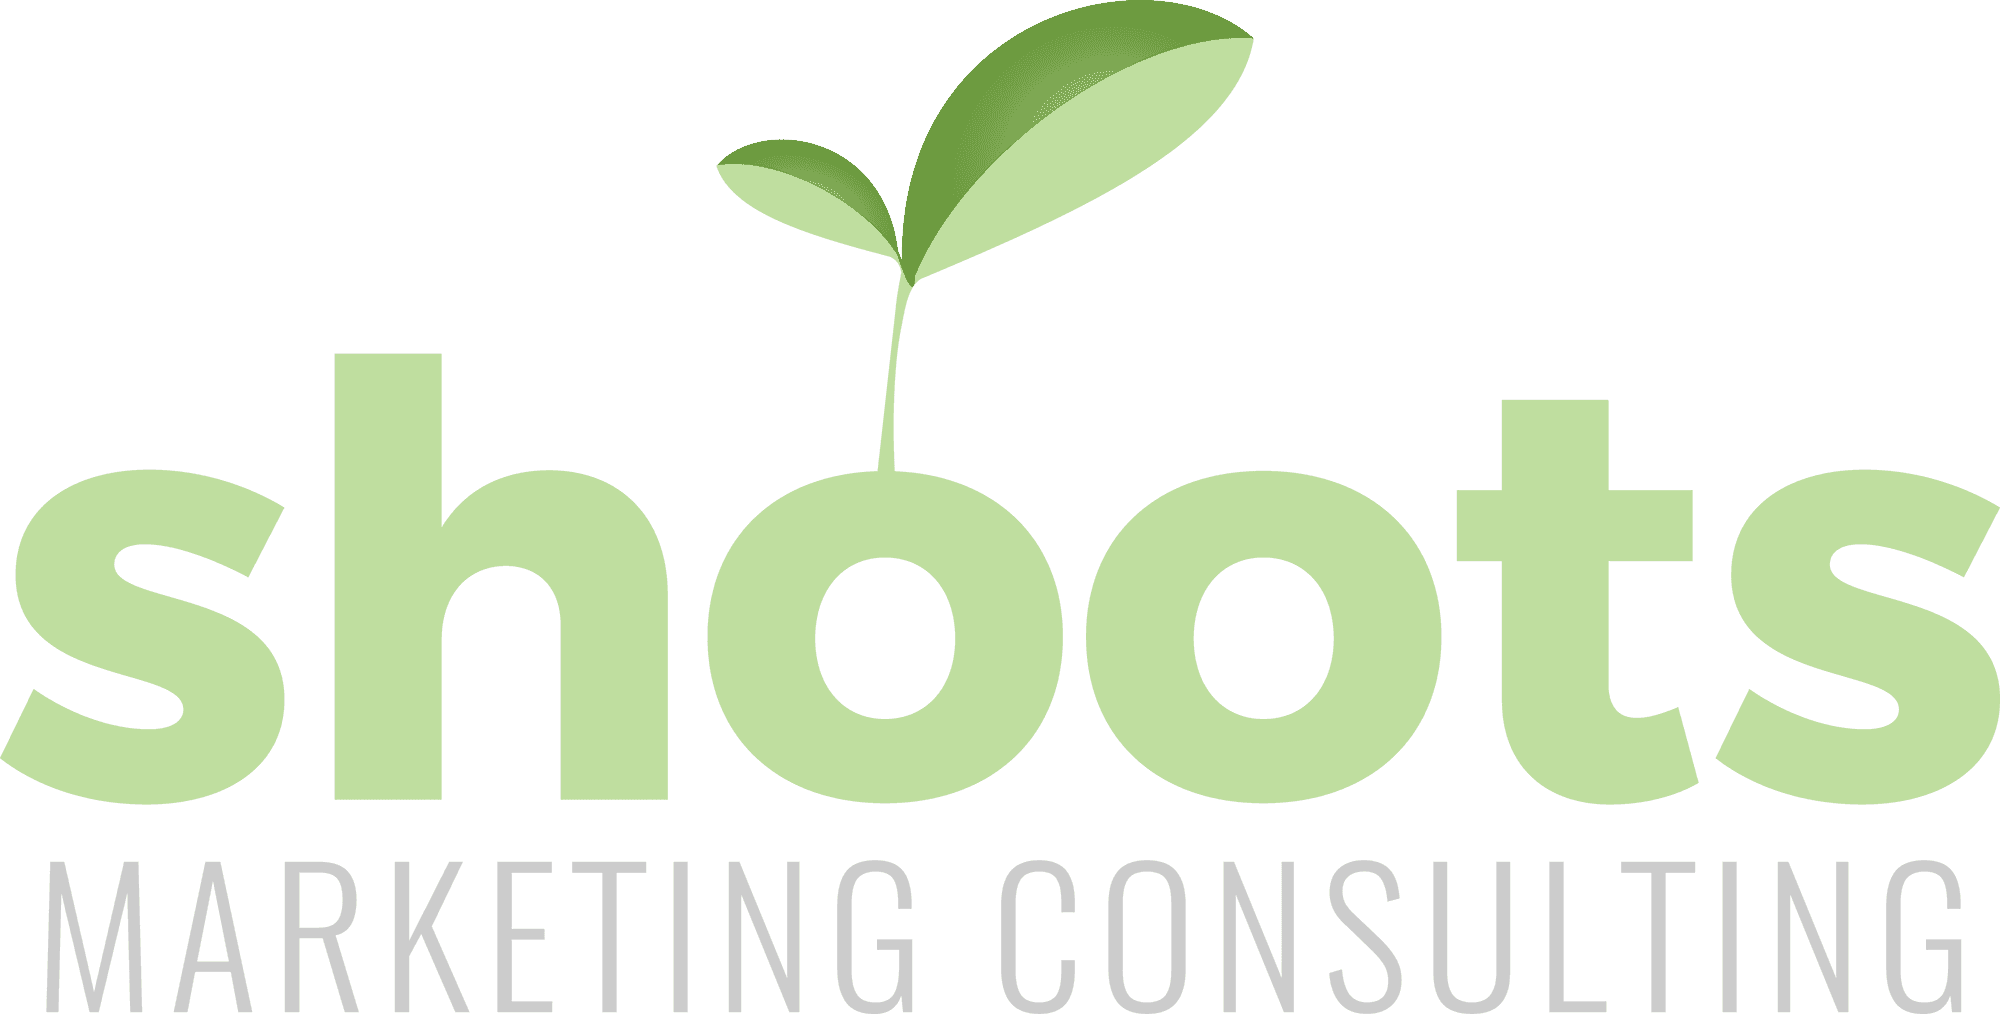 Shoots Marketing Consulting logo